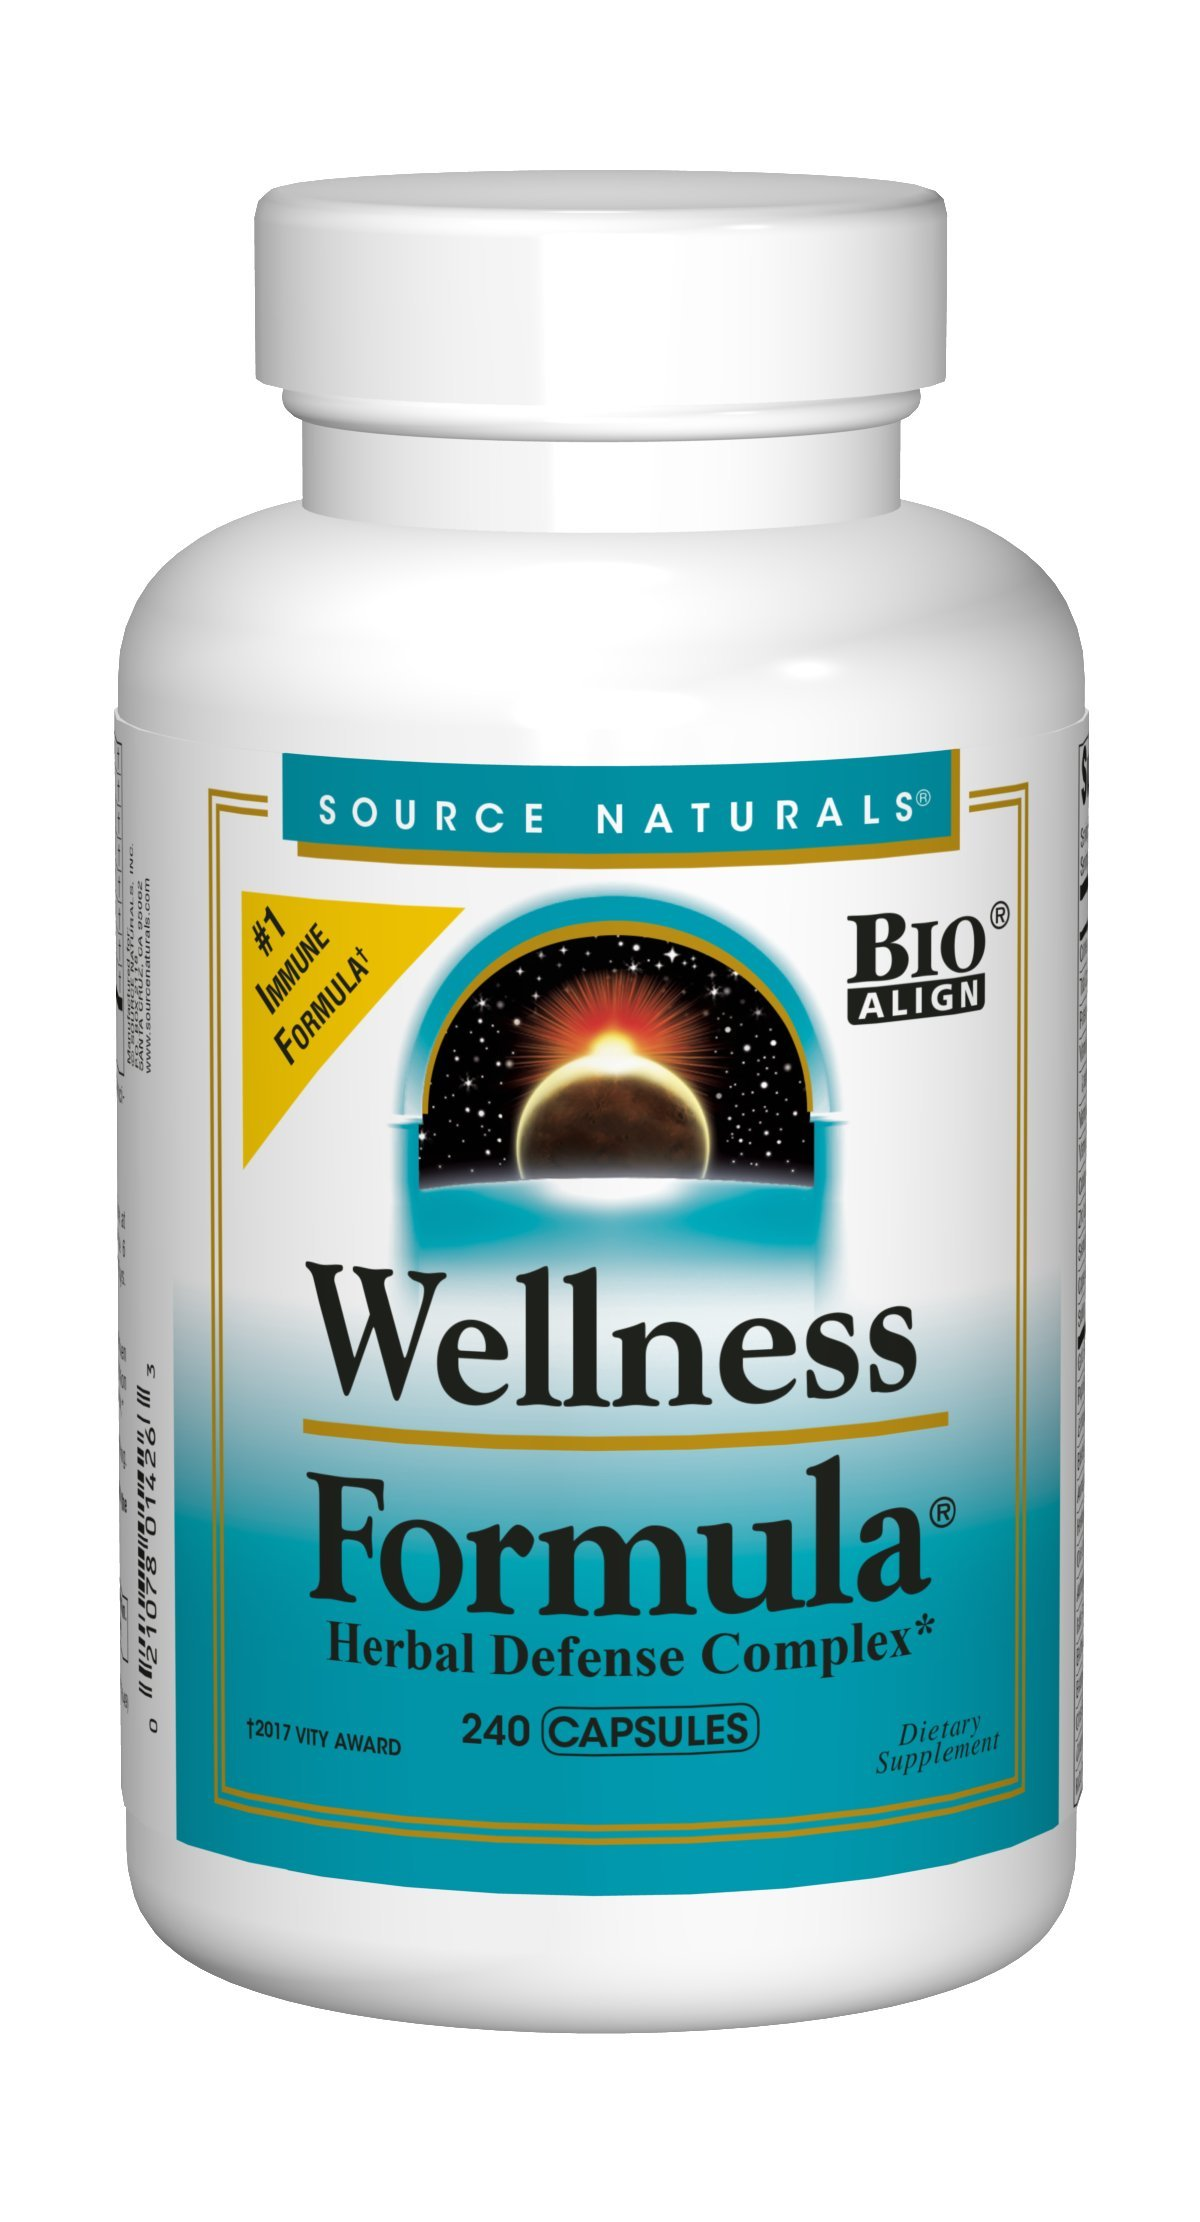 Source Naturals Wellness Formula Bio-Aligned Supplement Herbal Defense Complex Immune System Support & Immunity Booster Wholefood Multivitamin With Vitamins & Antioxidants - 240 Capsules